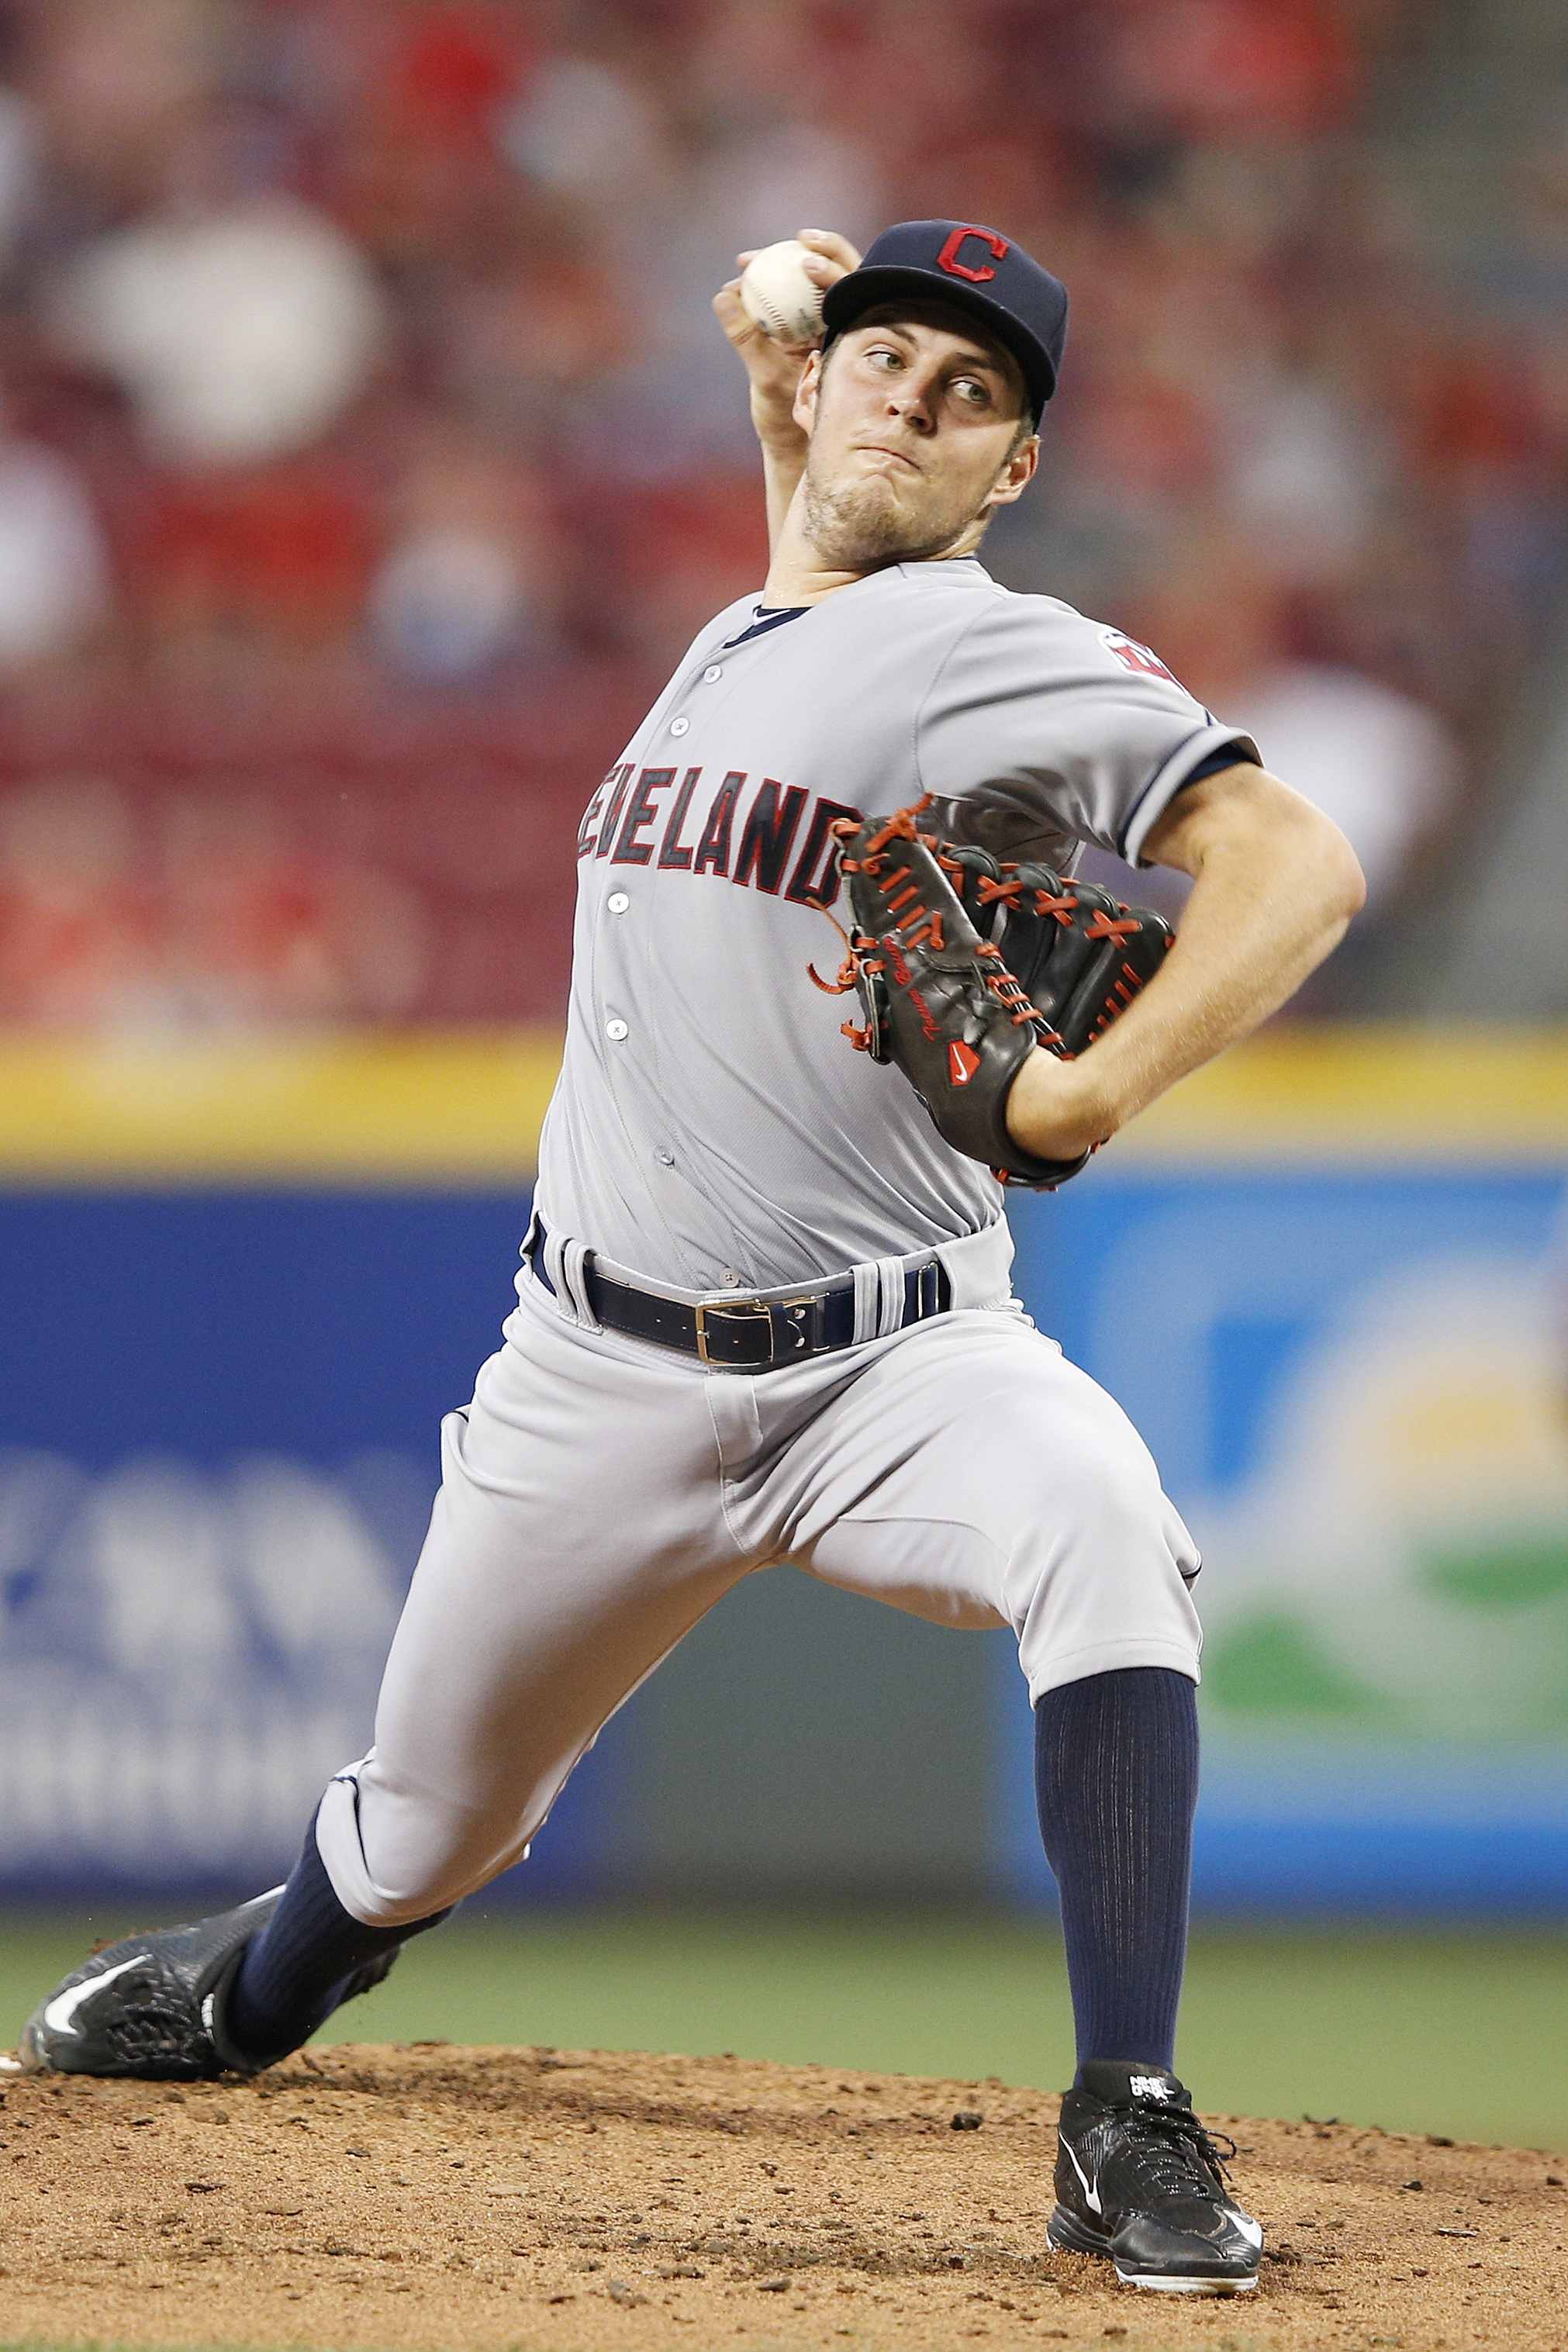 Will the enigmatic Trevor Bauer make the next step in 2016?